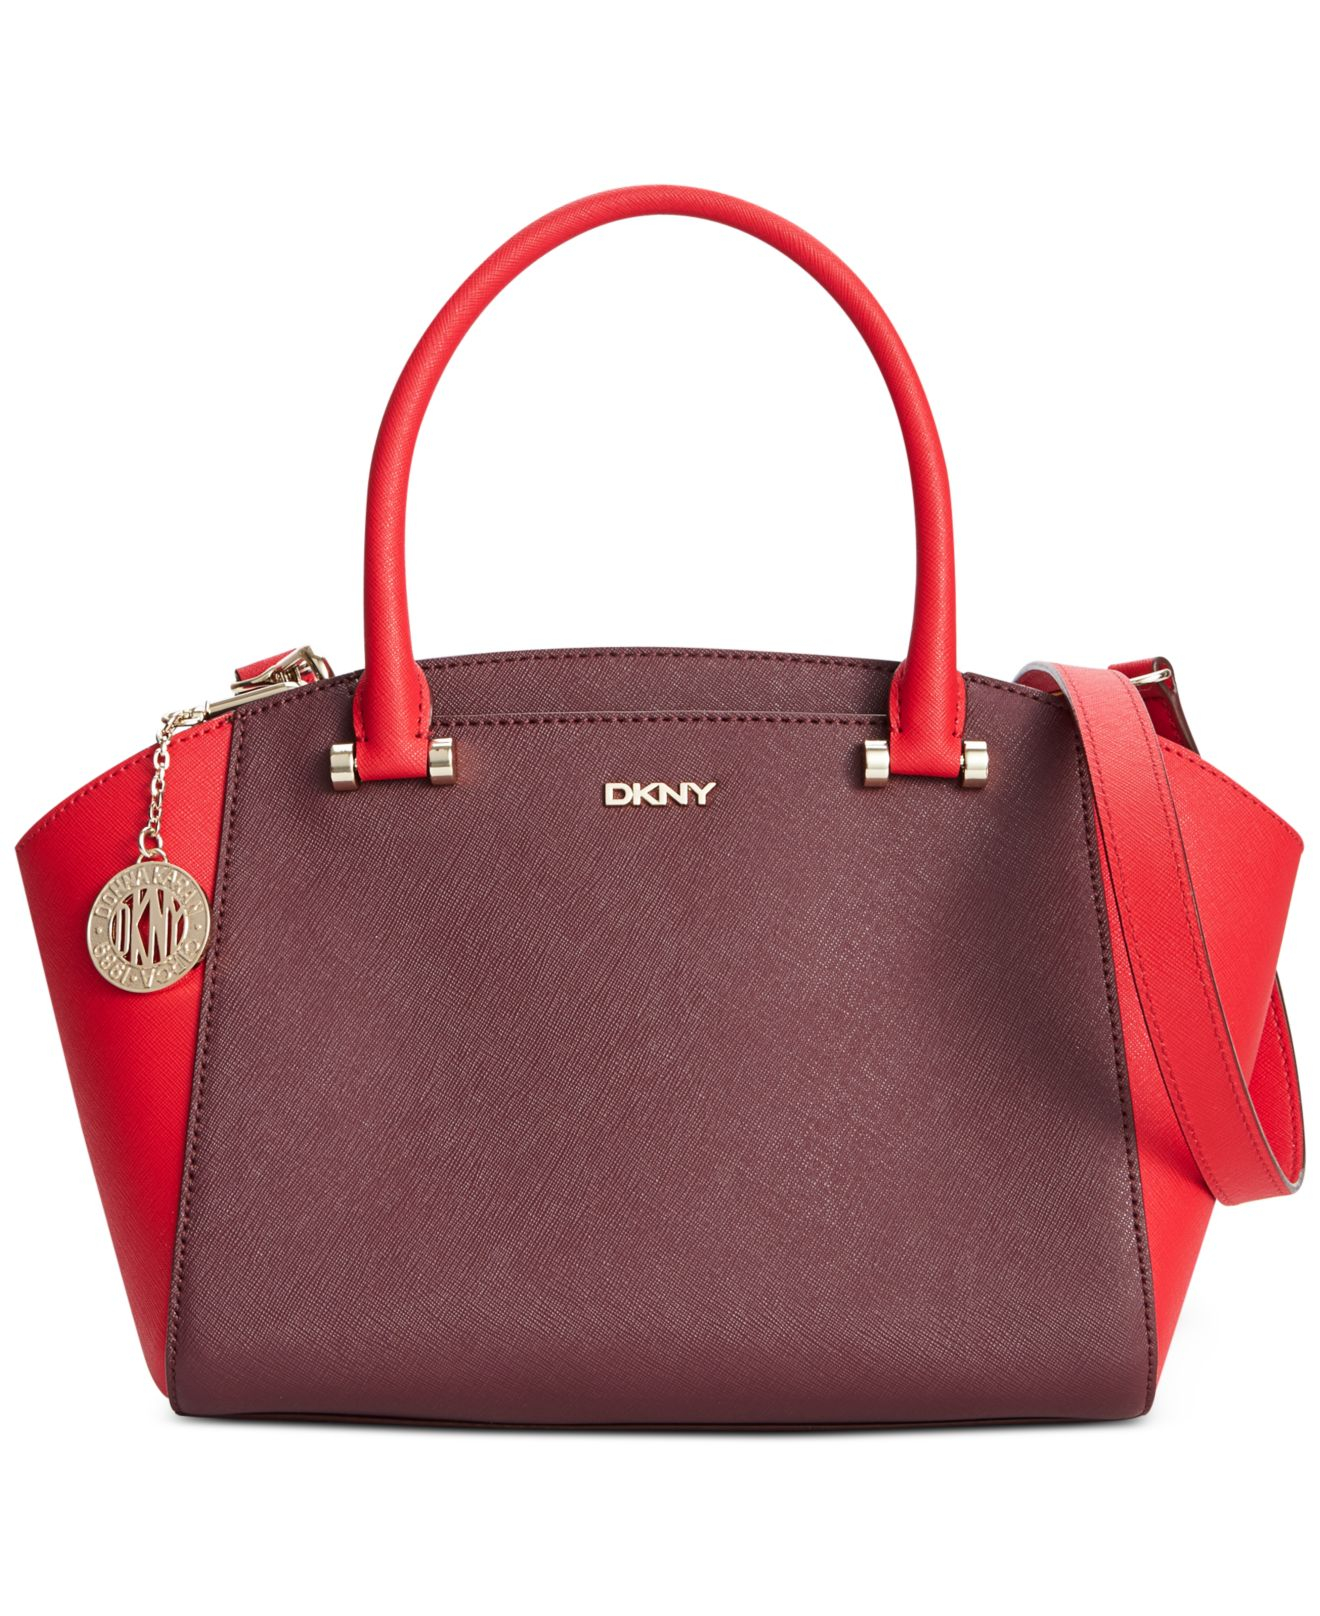 dkny bryant park saffiano small satchel in purple lyst. Black Bedroom Furniture Sets. Home Design Ideas